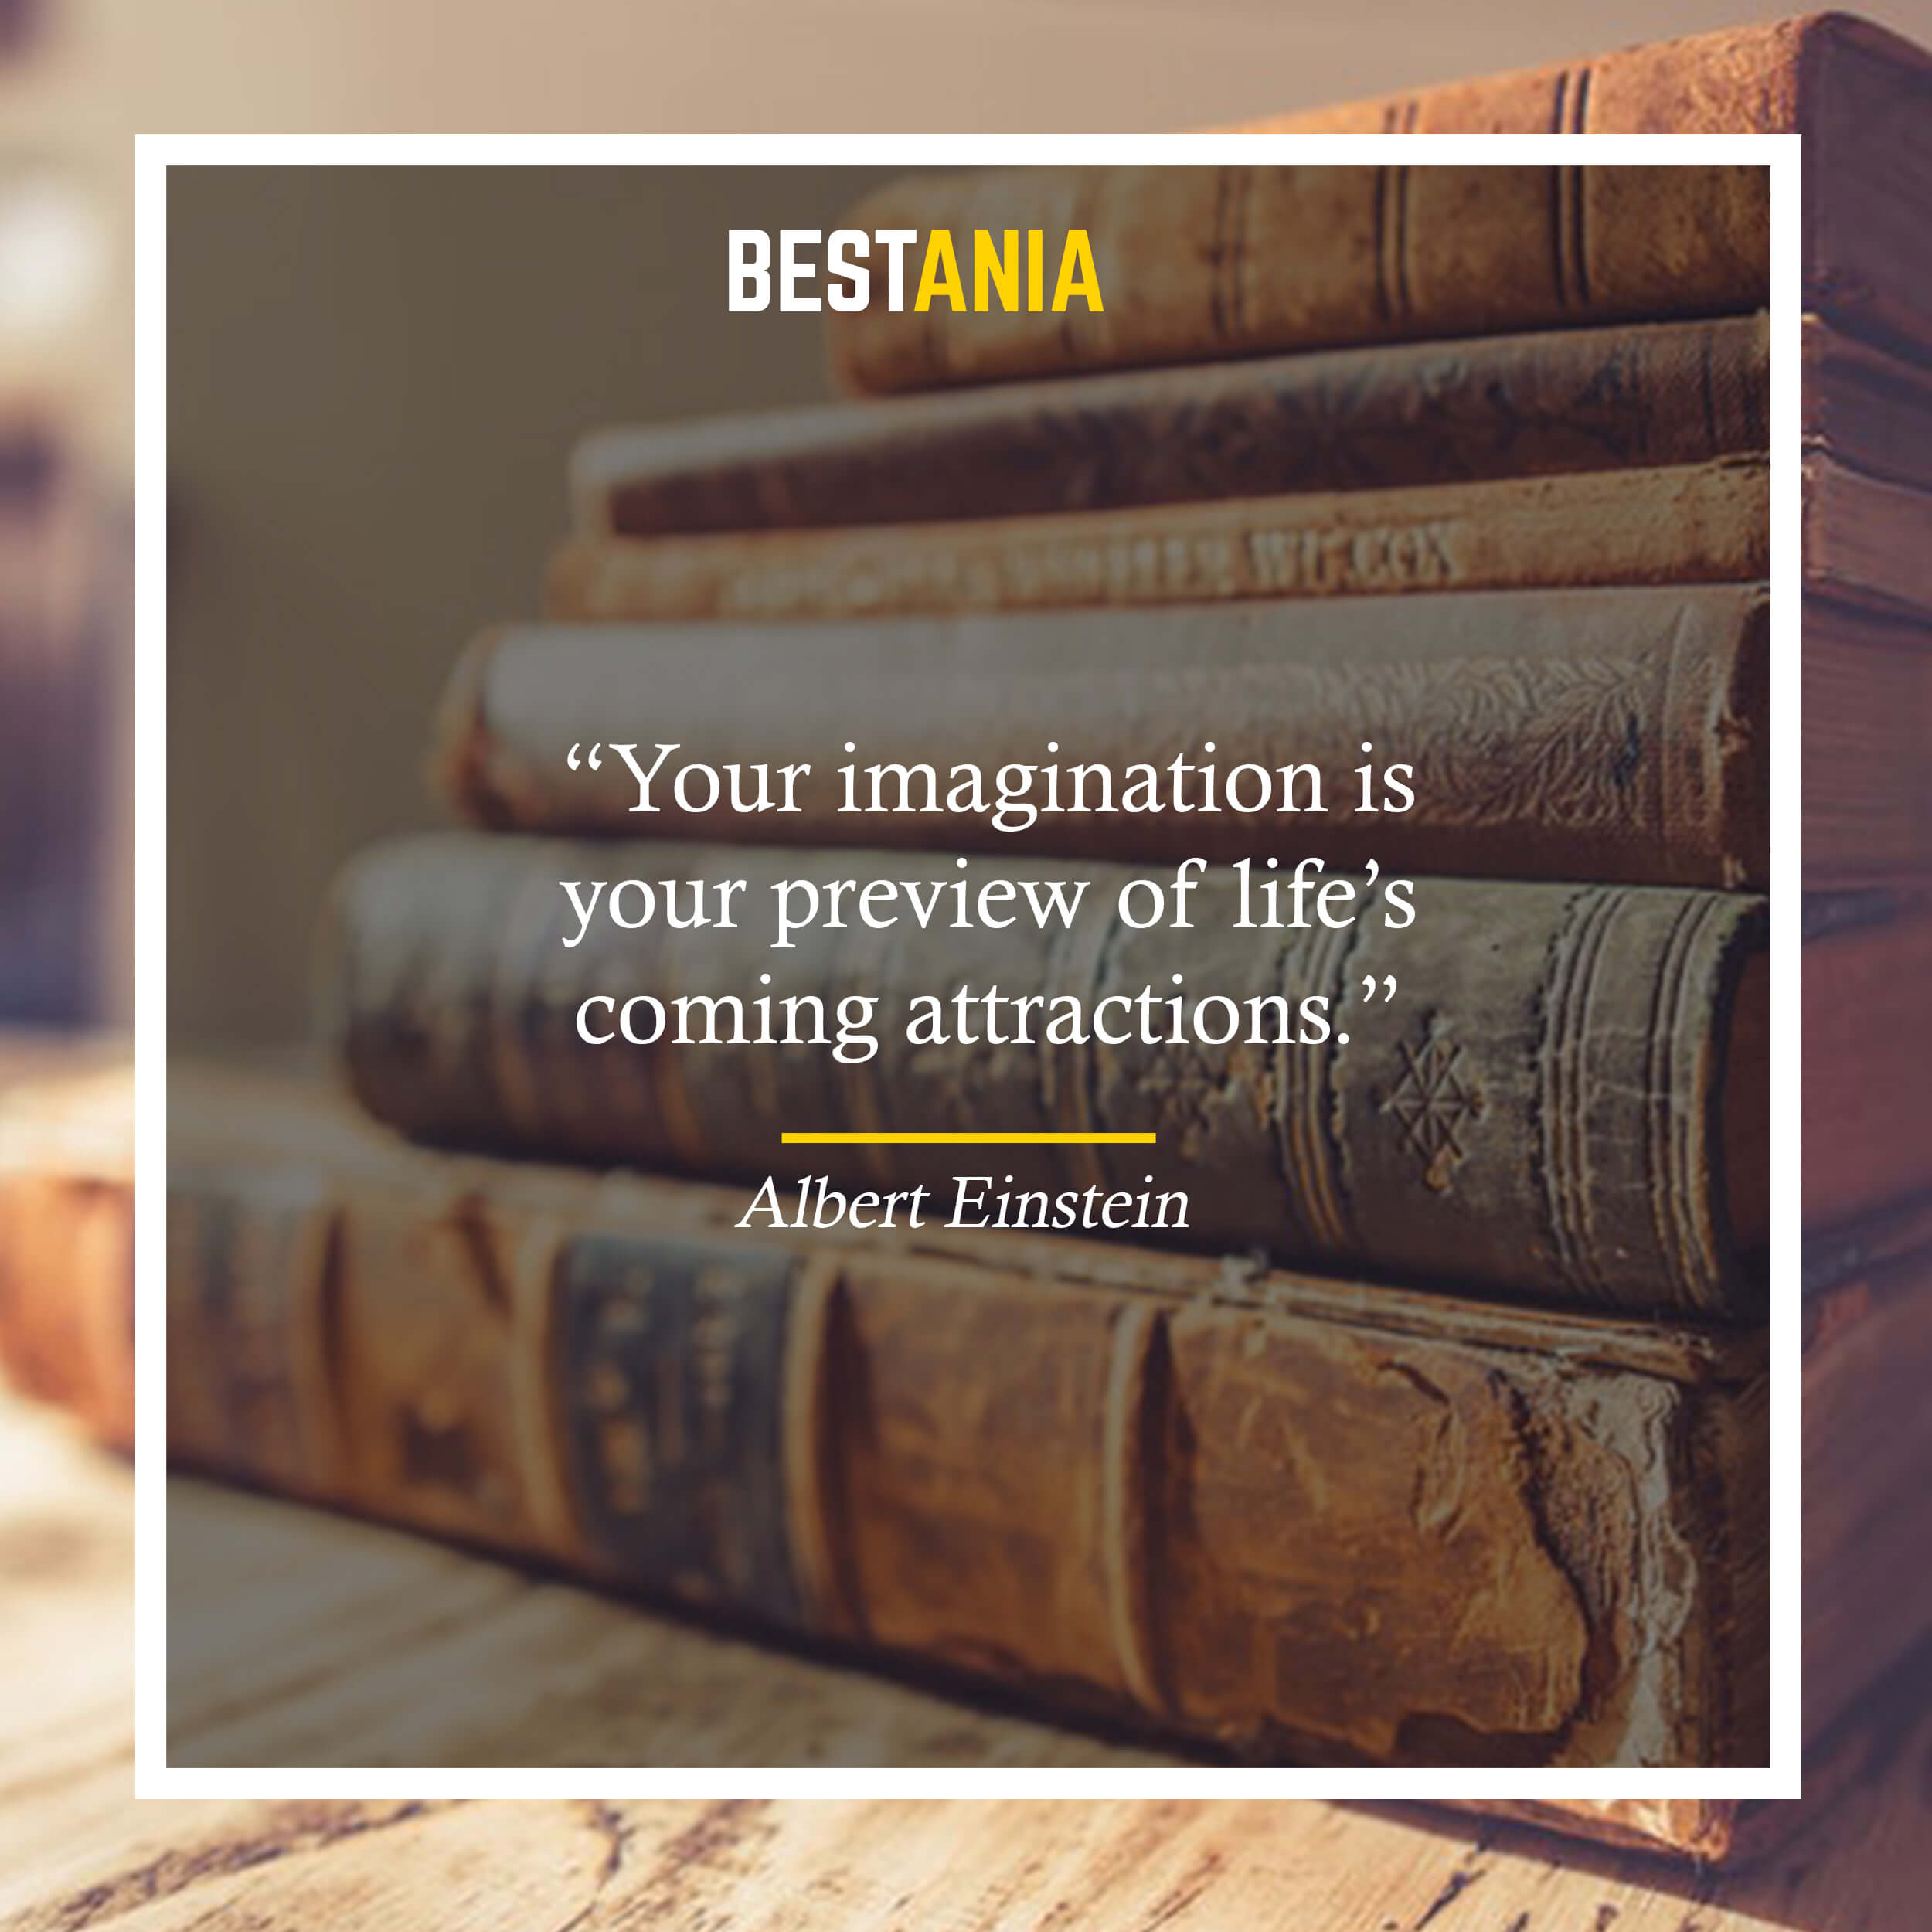 """Your imagination is your preview of life's coming attractions."" – Albert Einstein"